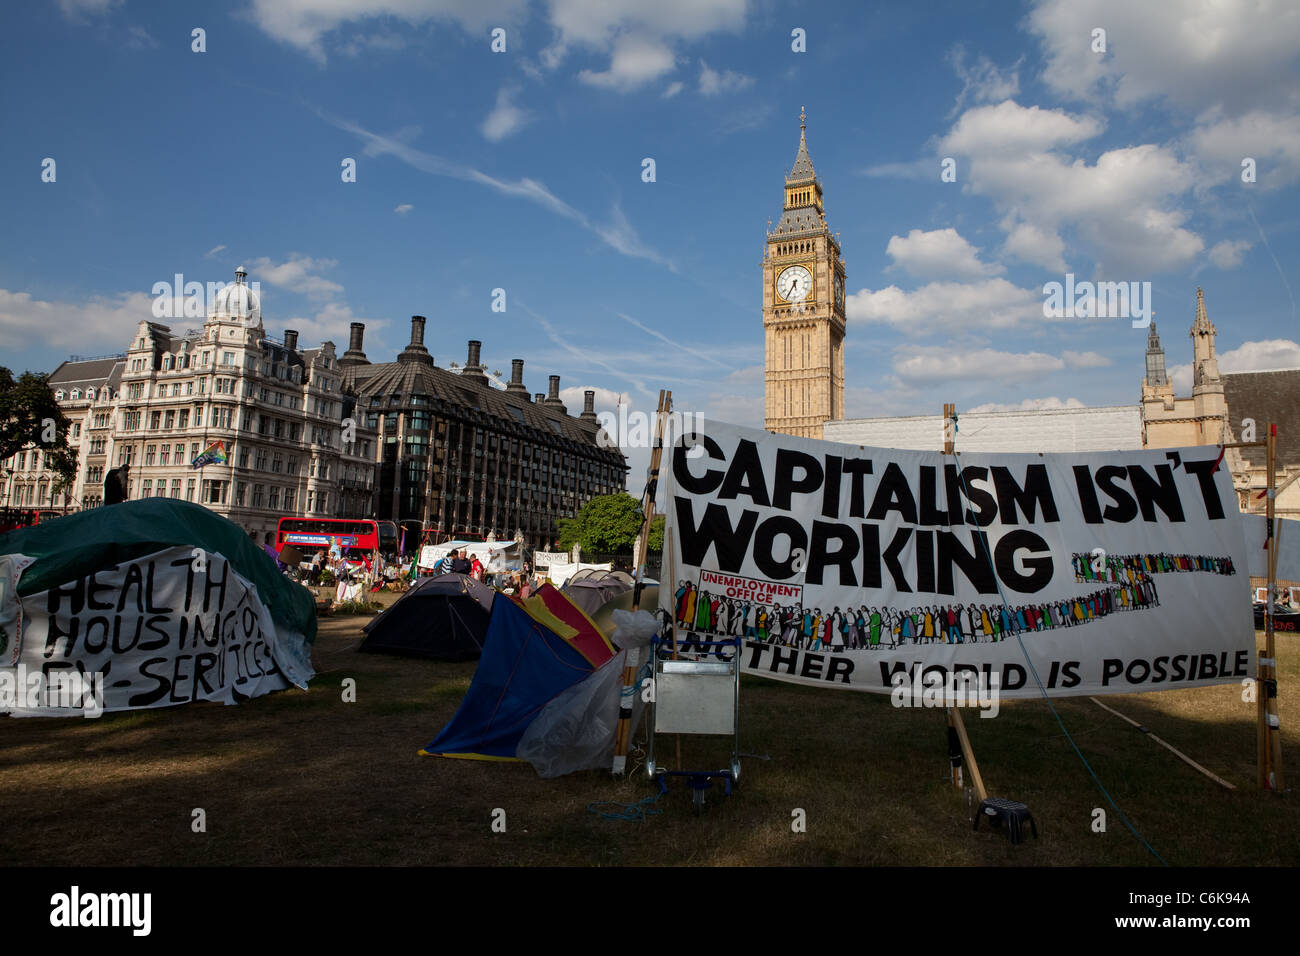 View of Democracy Village peace camp with banners, tents and Big Ben in the background. Stock Photo